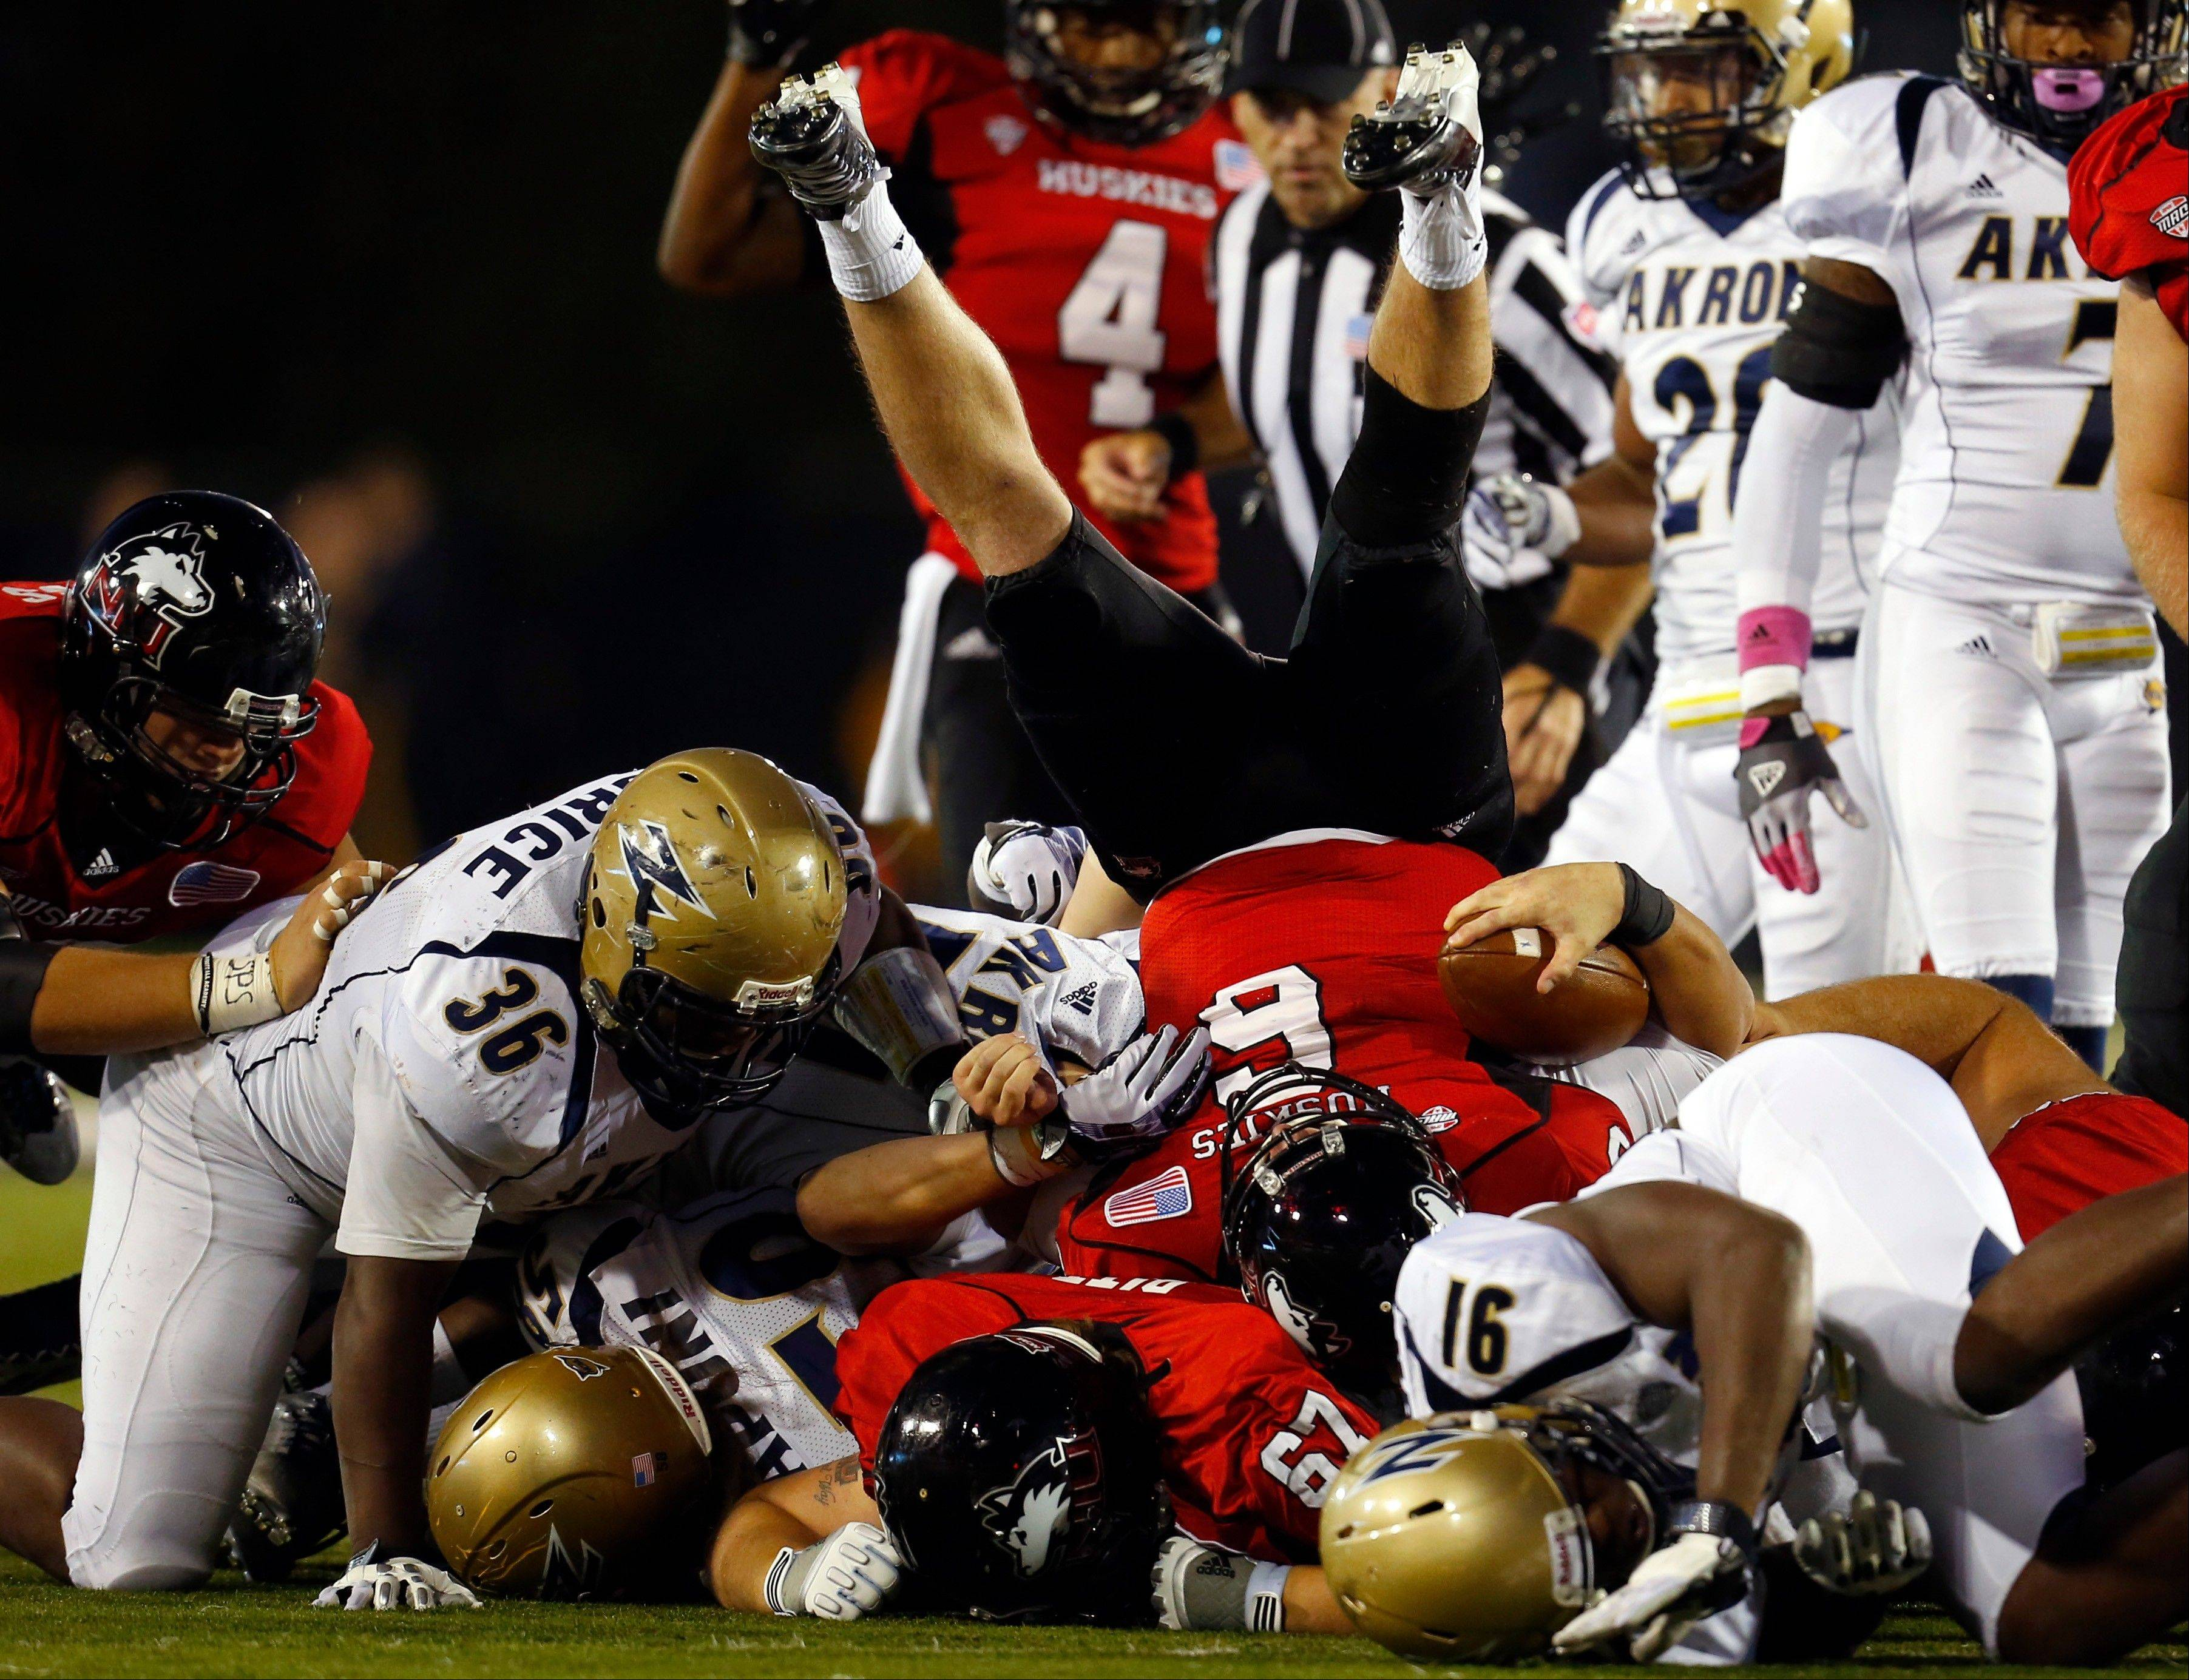 Northern Illinois quarterback Jordan Lynch (6) rolls back over the pile during Saturday's homecoming win over Akron.